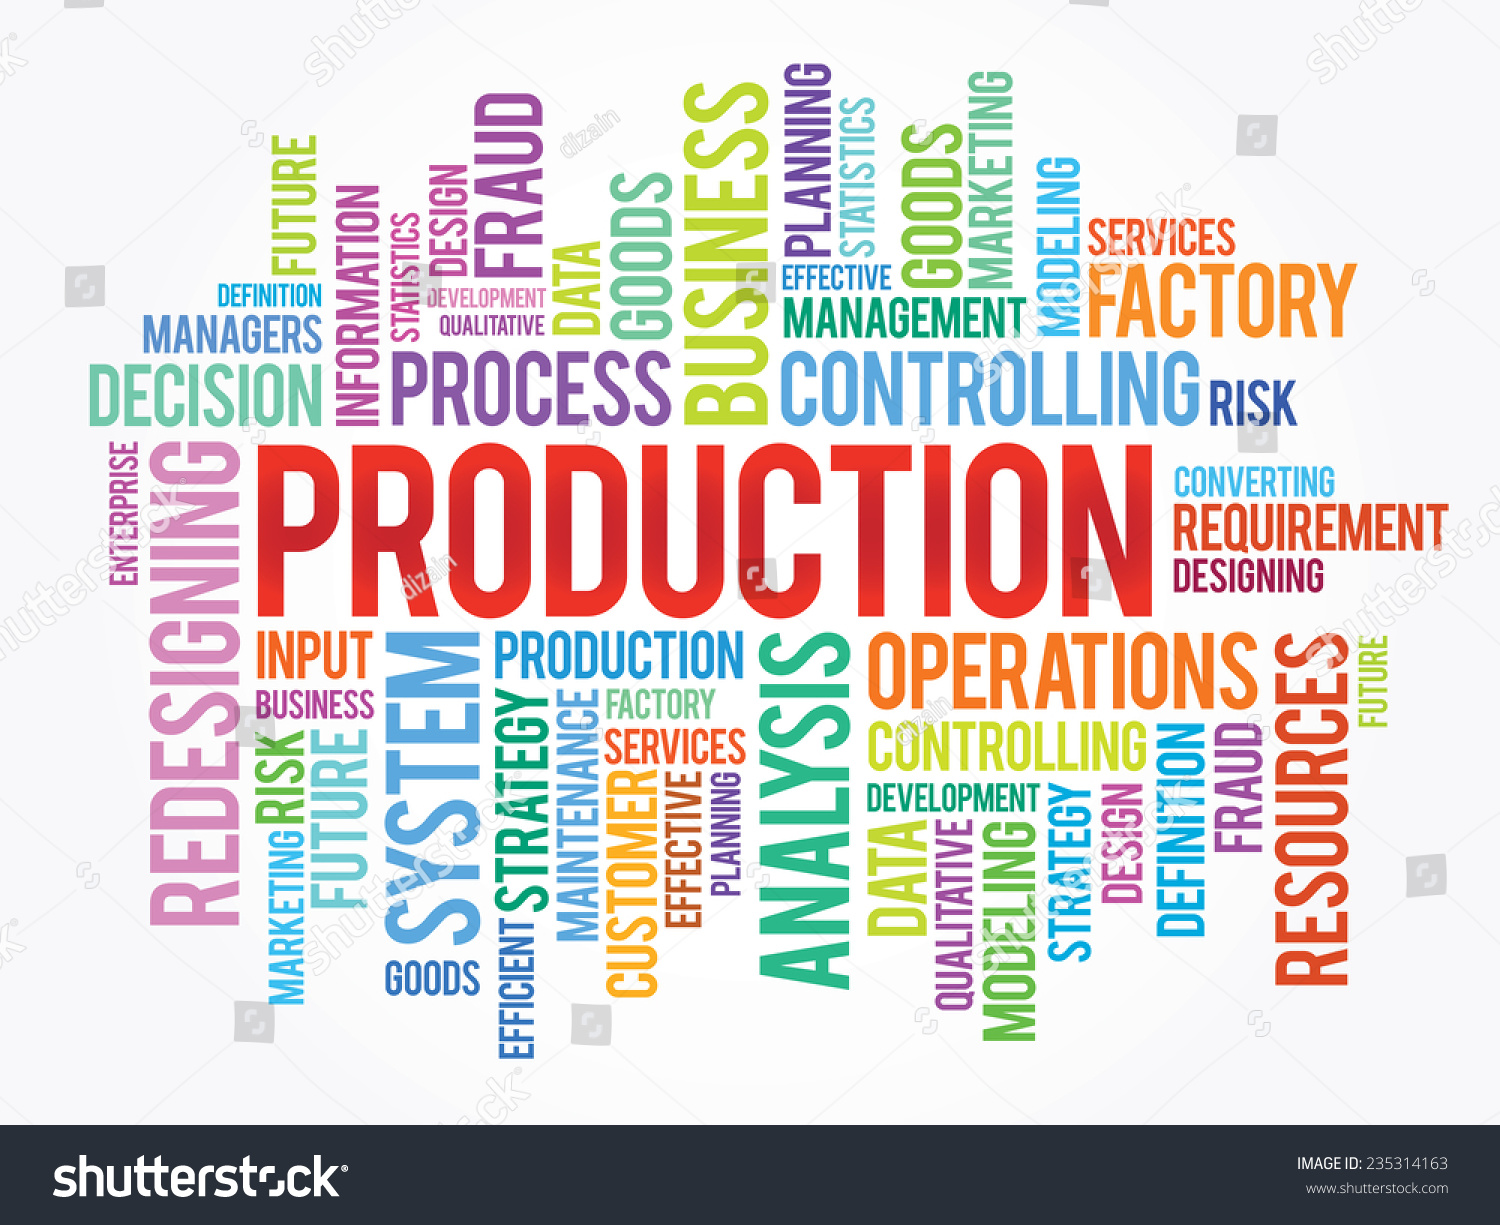 royalty free word cloud of production related items free vector artwork for screen printing free vector artwork lawn services